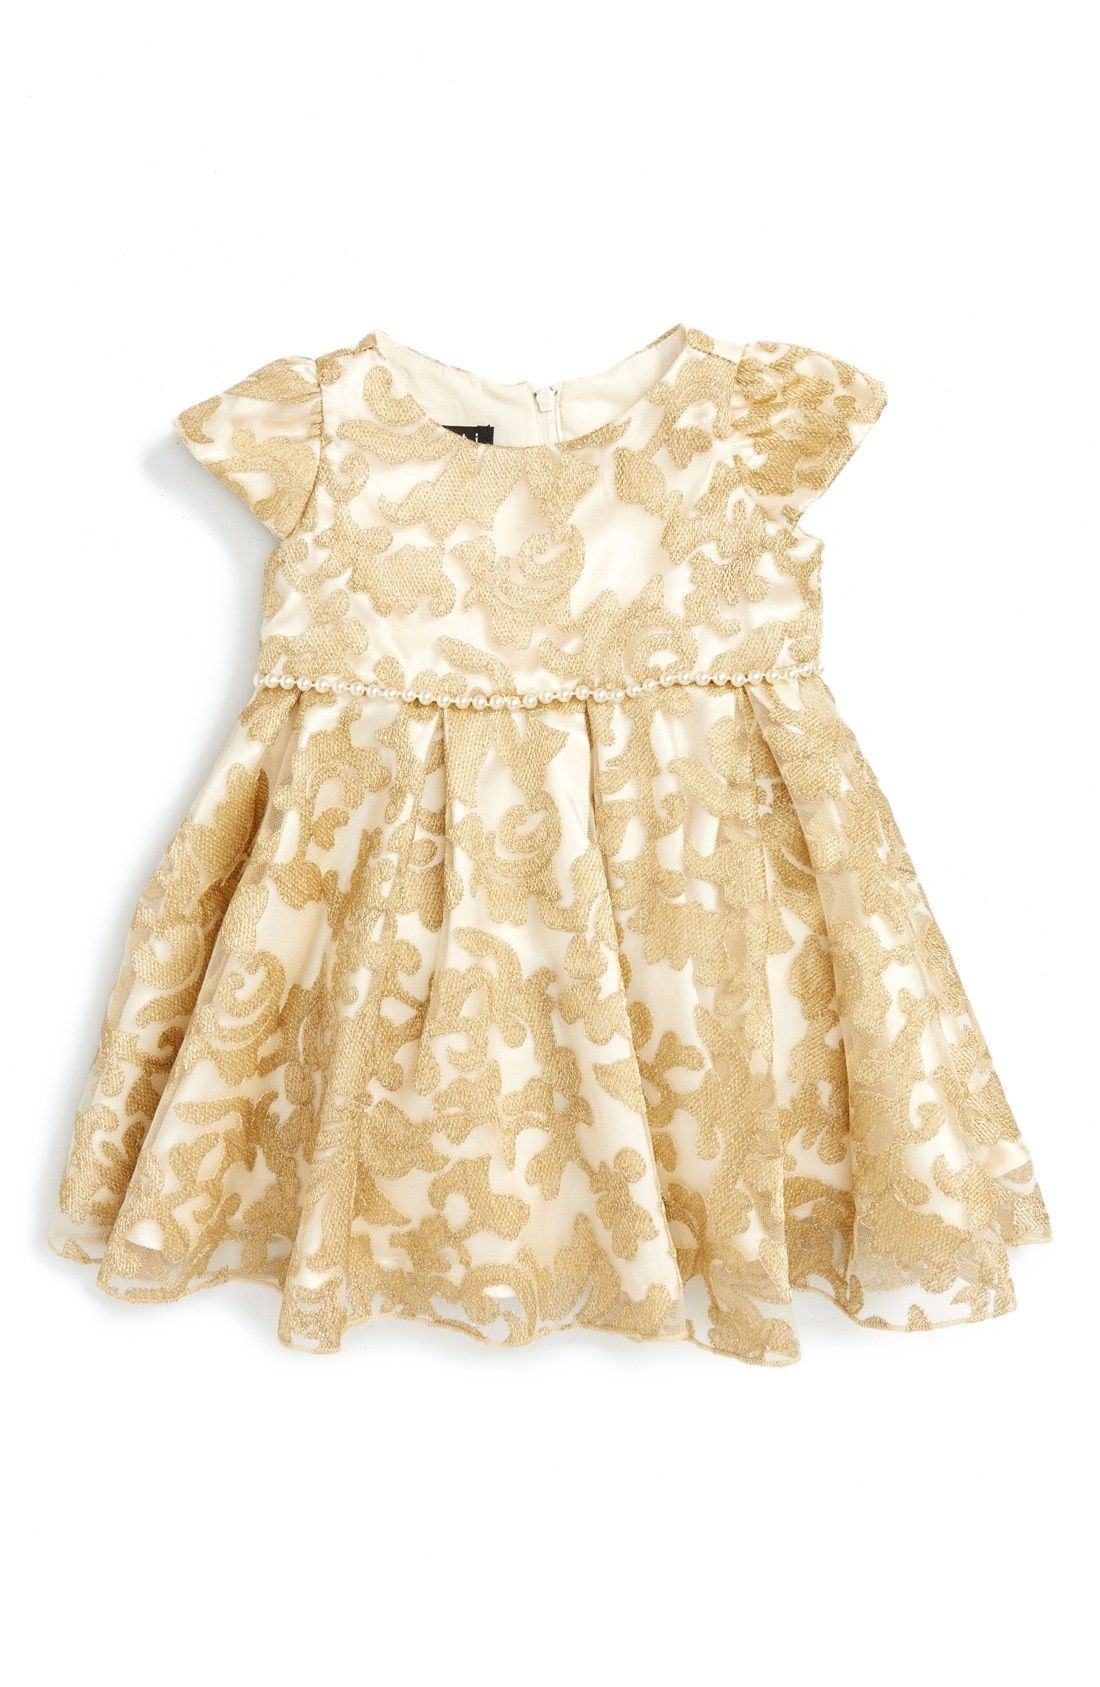 Where to find cute flower girl dresses young wedding flower girl